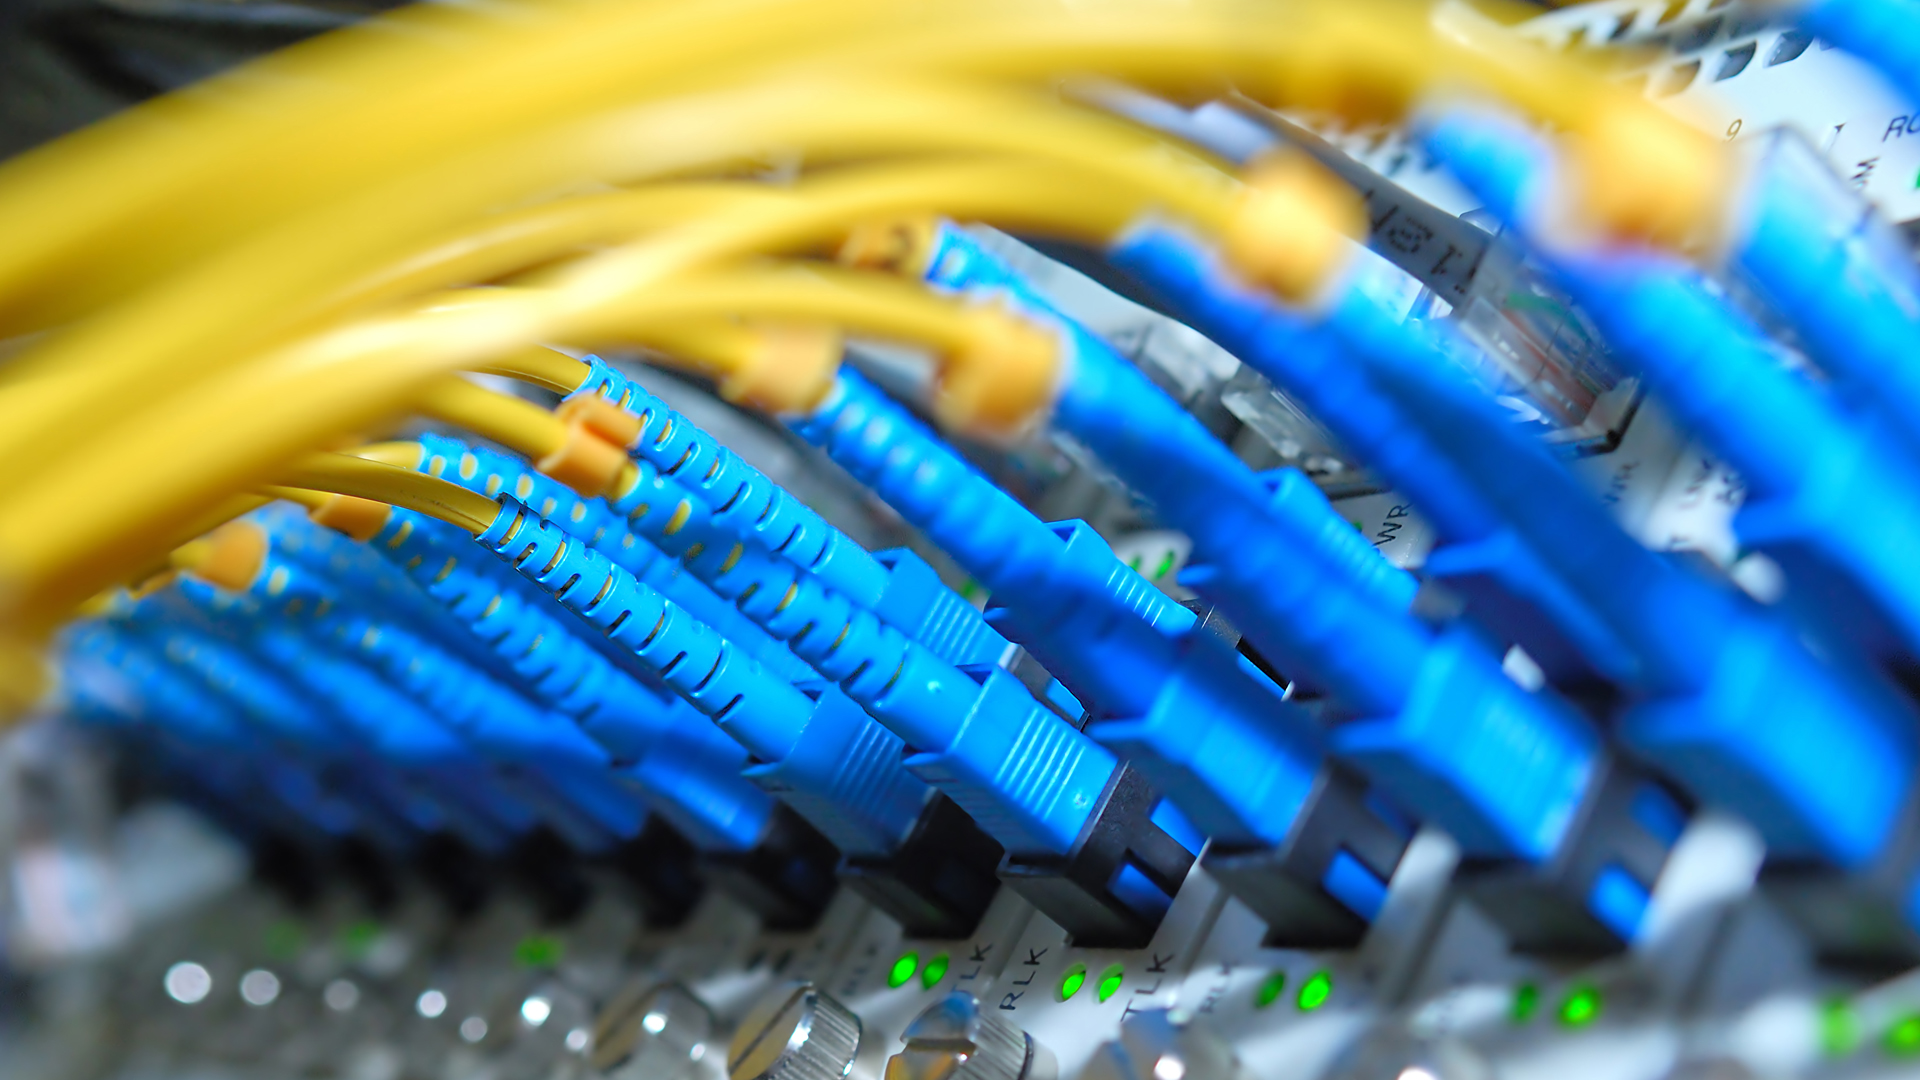 Policy Progress: The Parliament Passed Draft Law #2654 on Strengthening the Protection of Telecommunications Networks in the First Reading